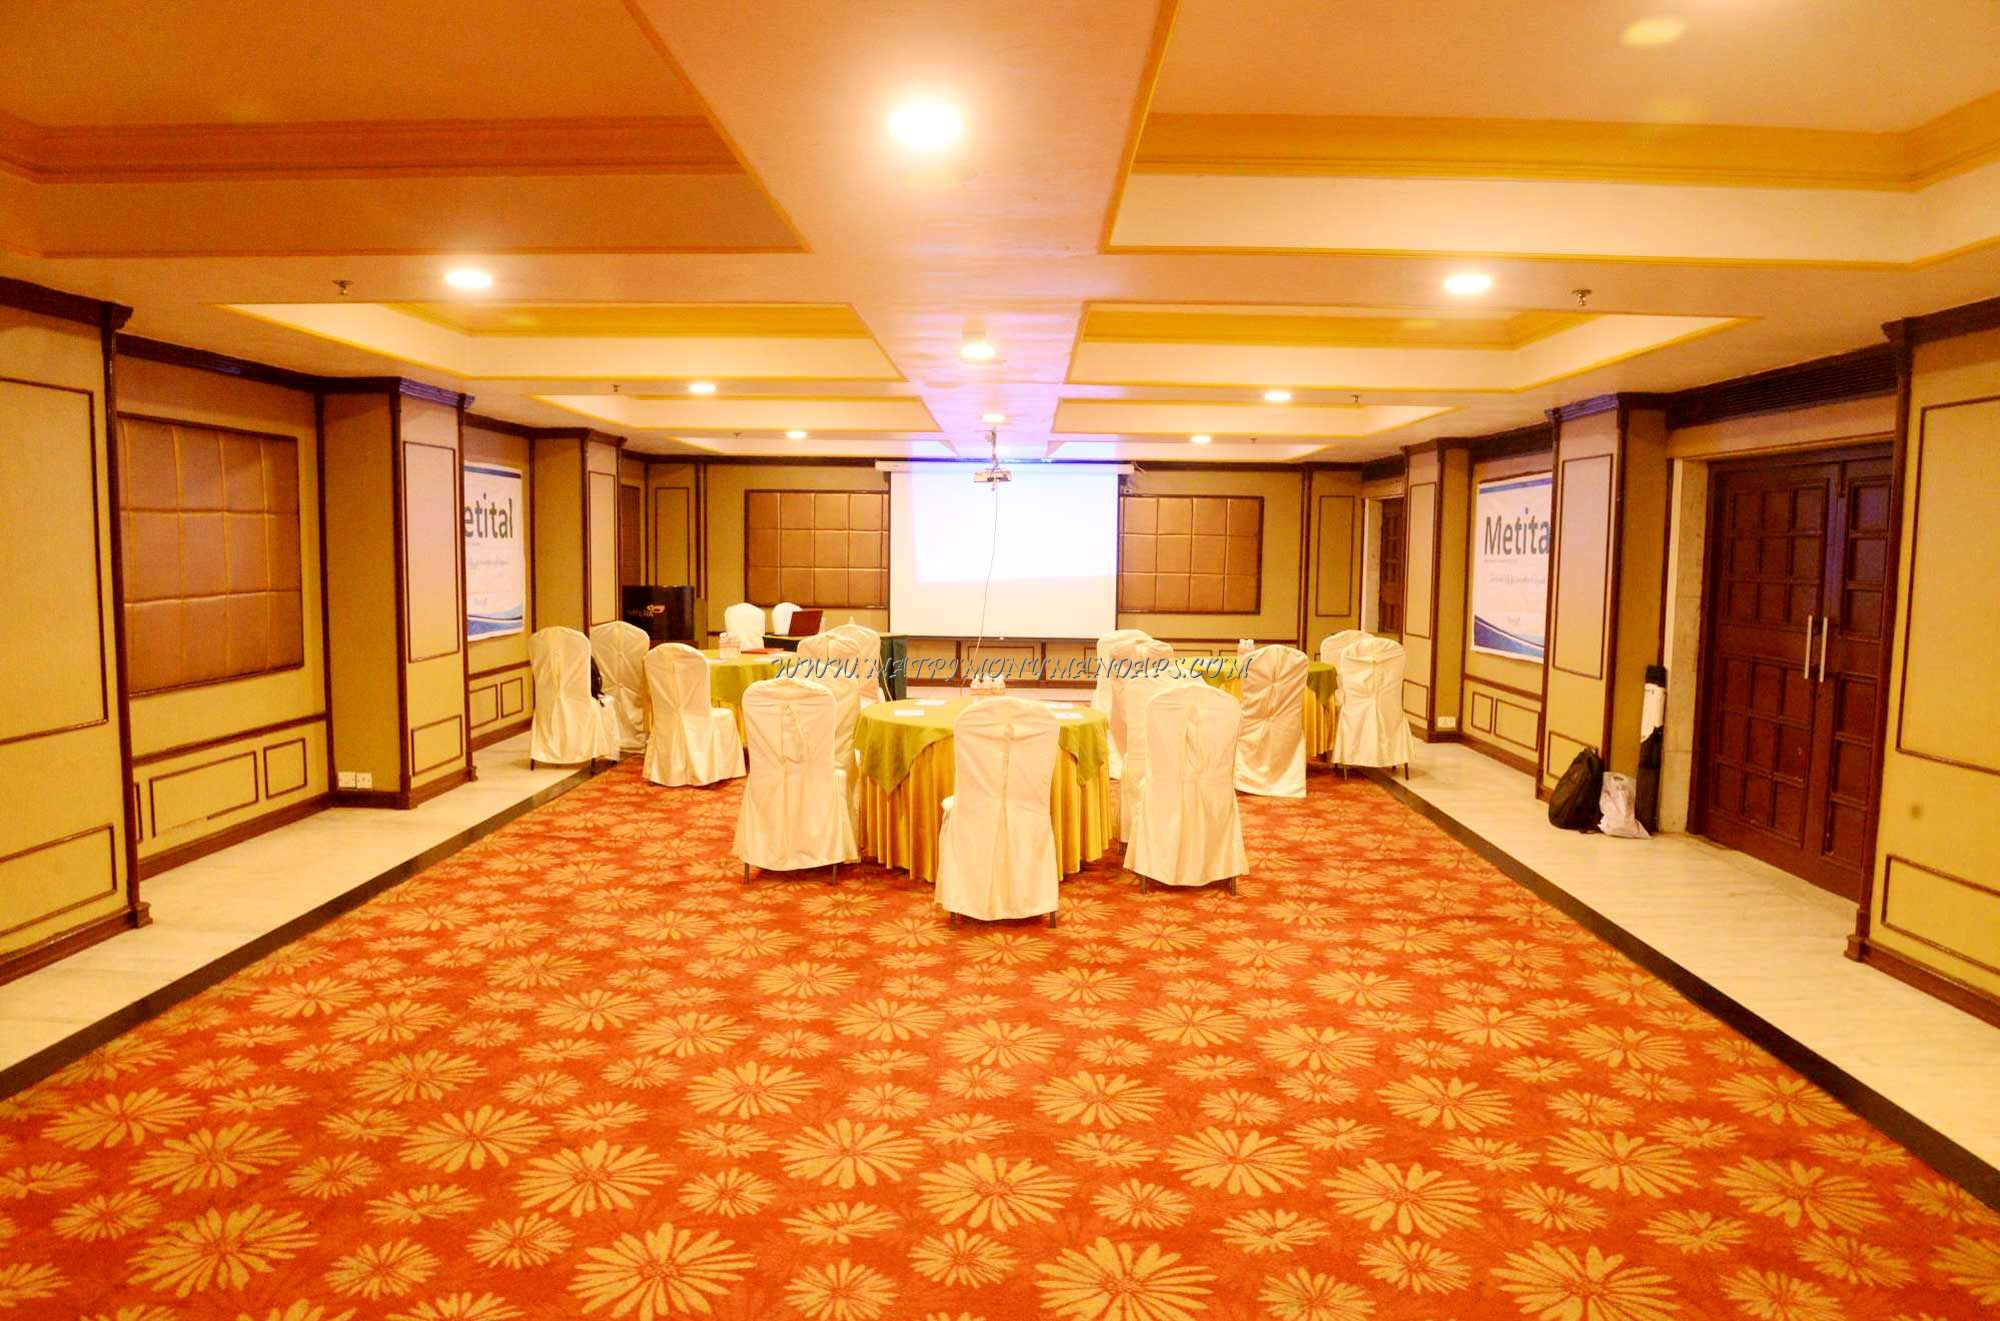 Find More Banquet Halls in Mylapore